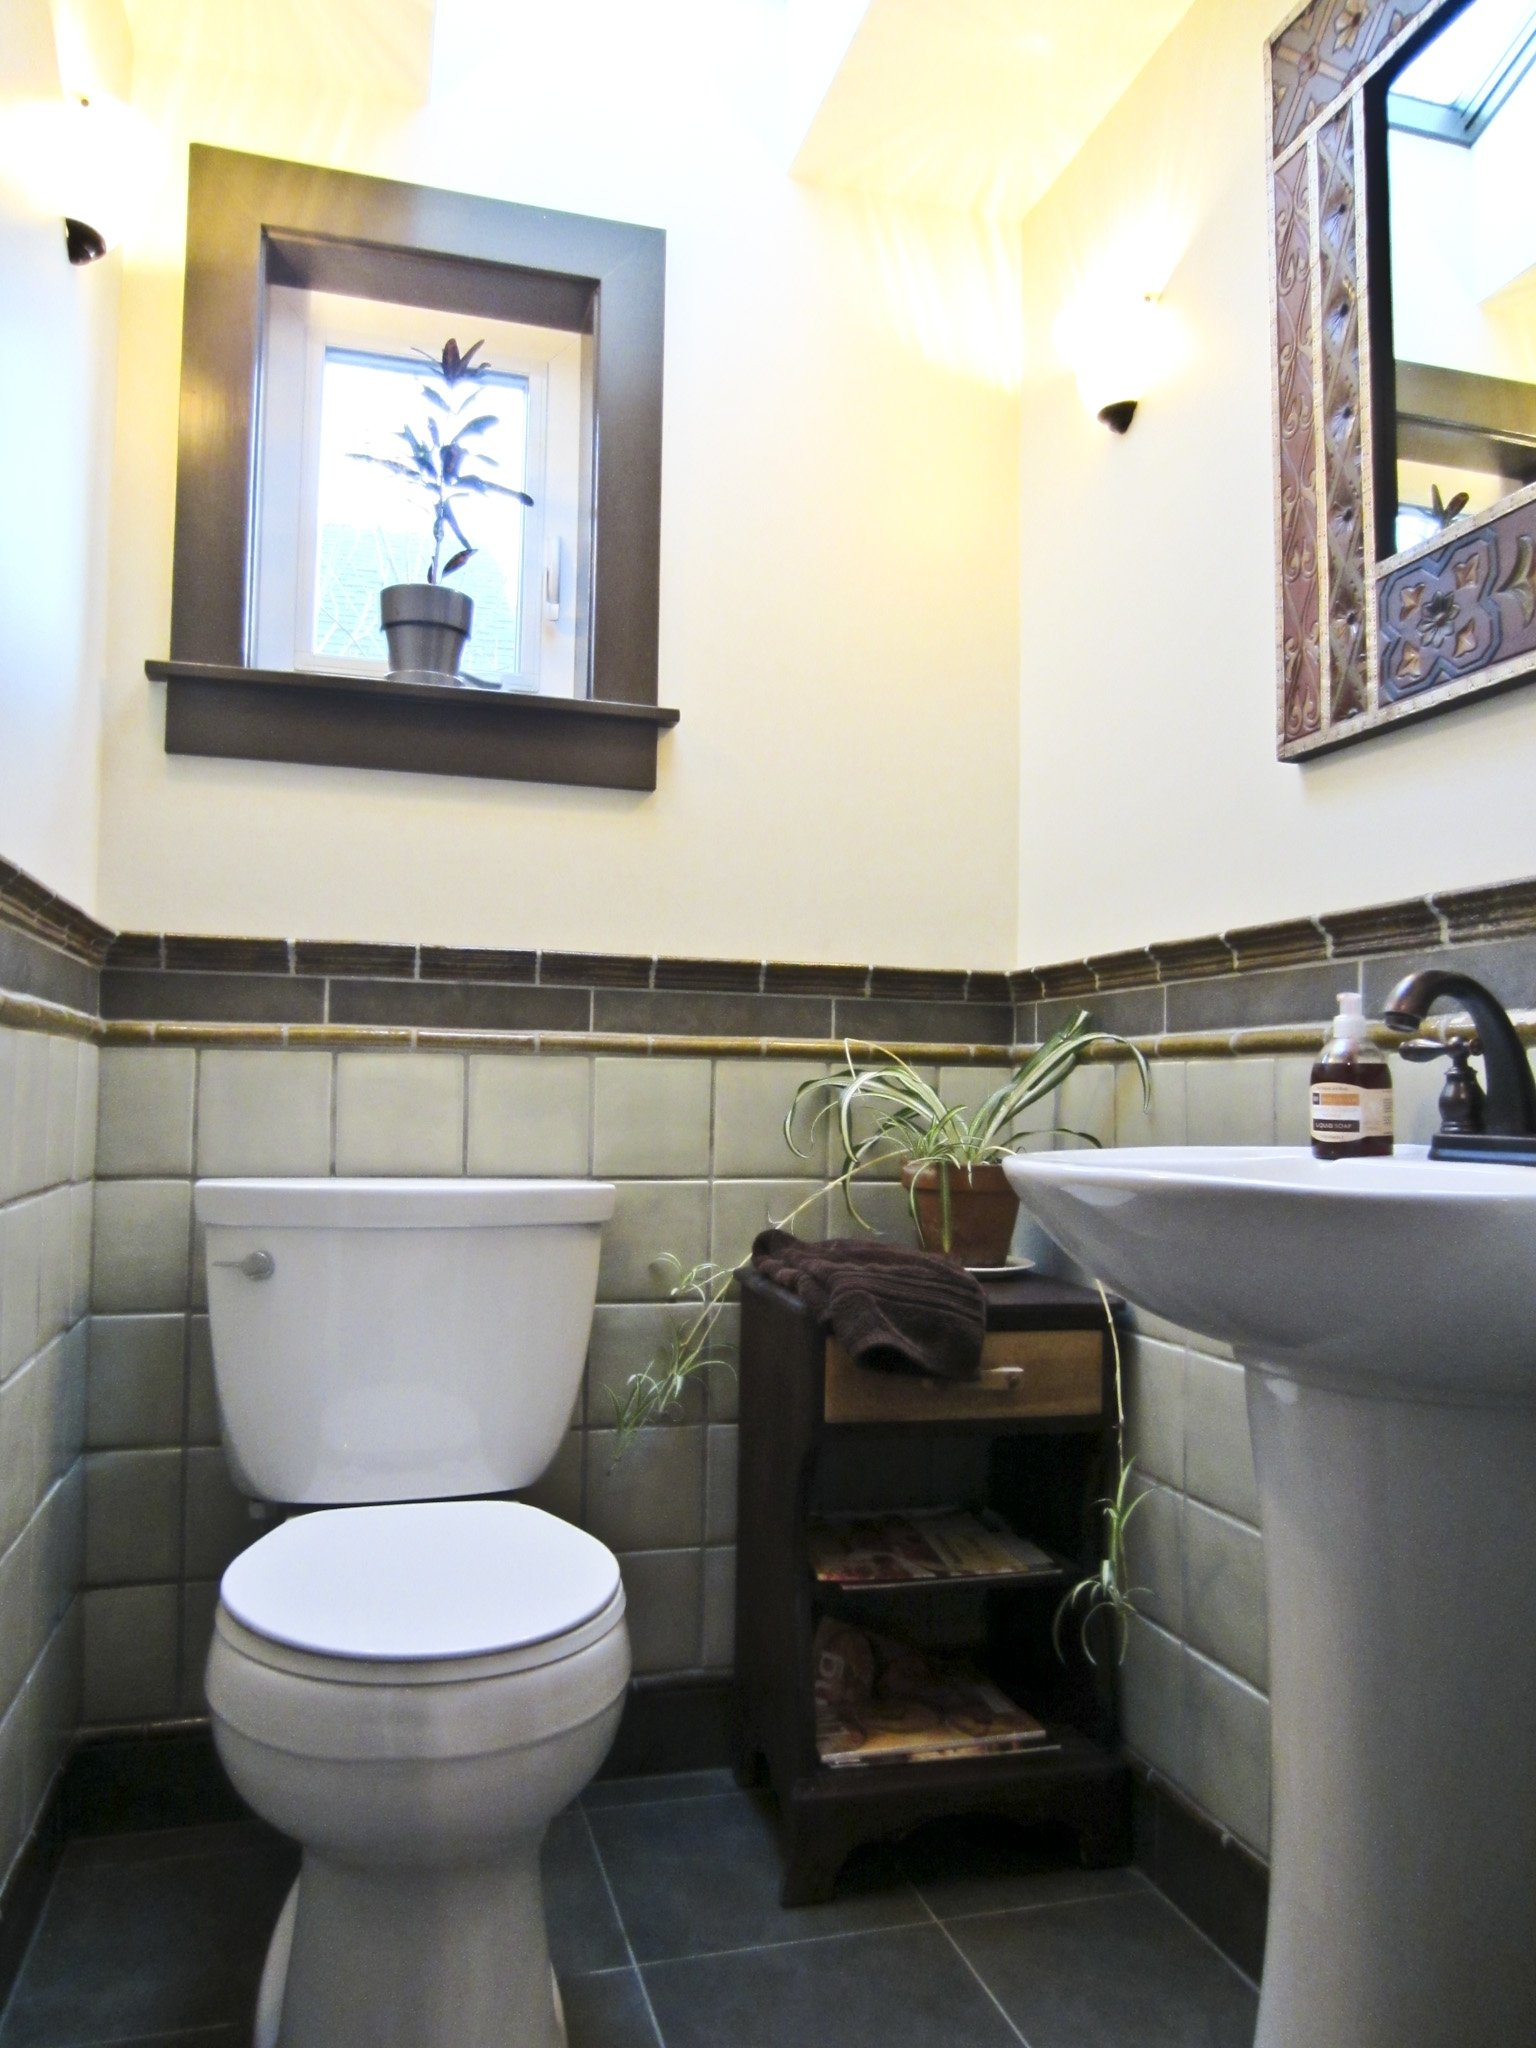 10 Cute Very Small Powder Room Ideas small room design powder ideas for spaces decorating traditional